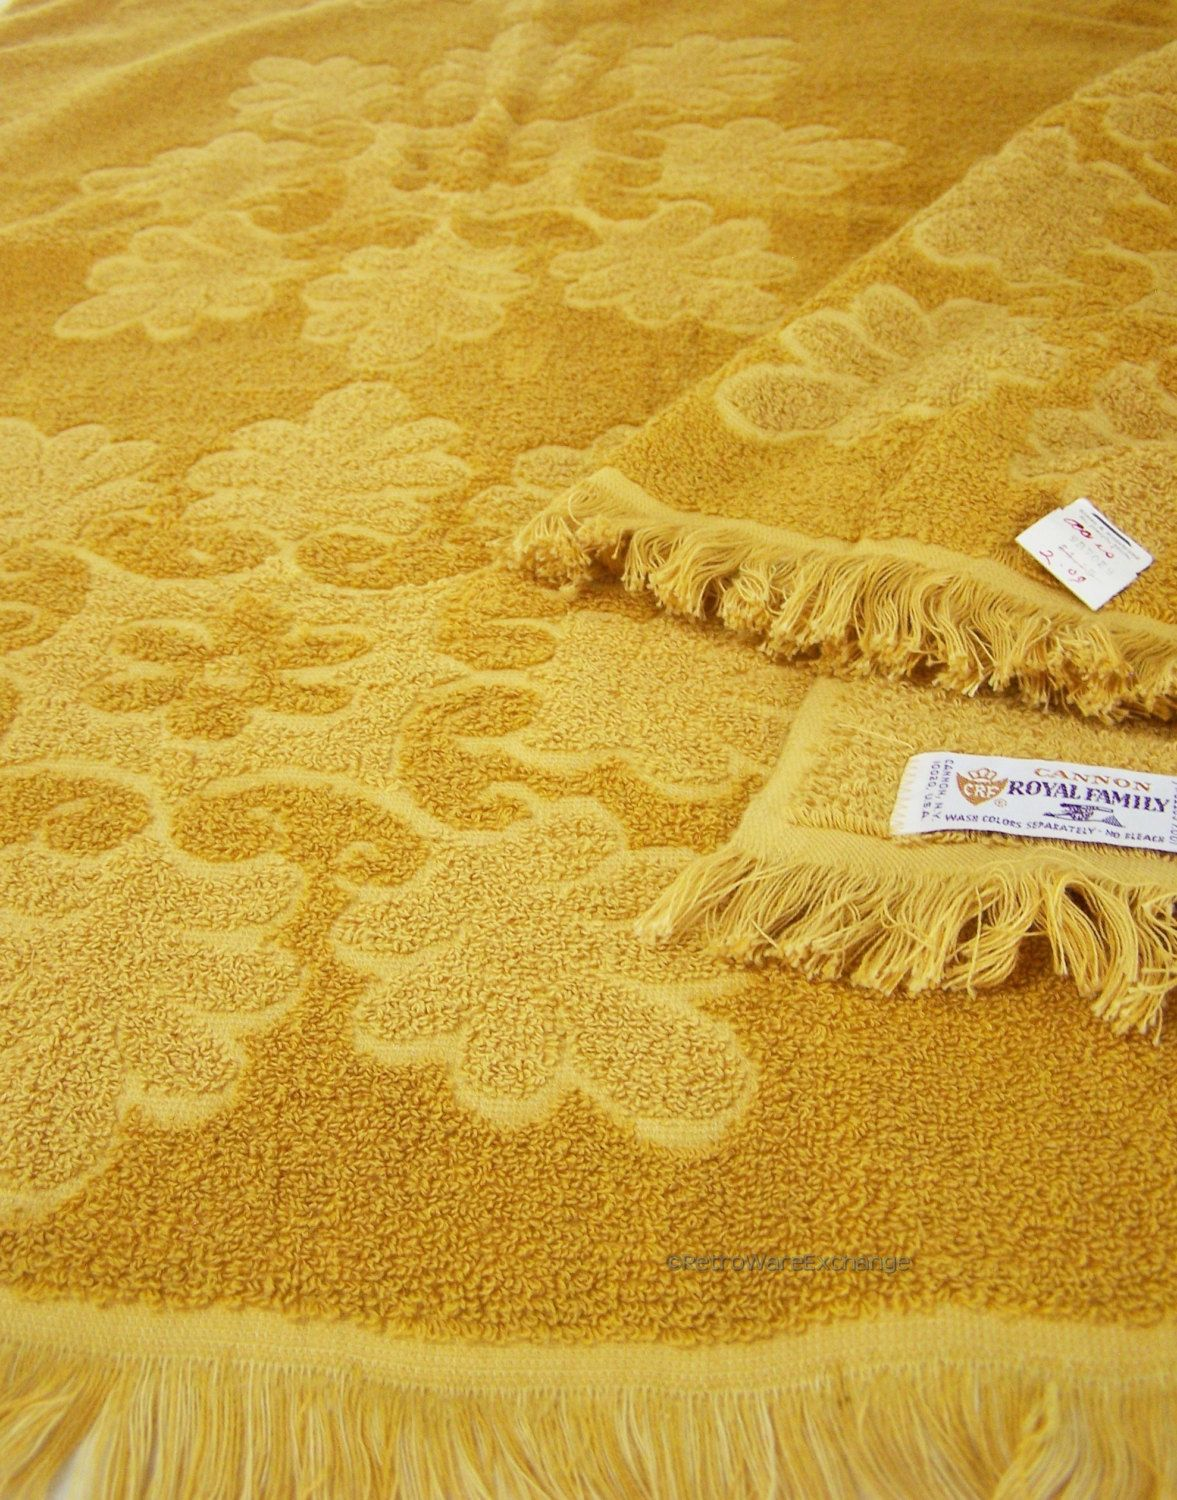 Vintage Mid Century Cannon Royal Family Gold Bath Towels 2